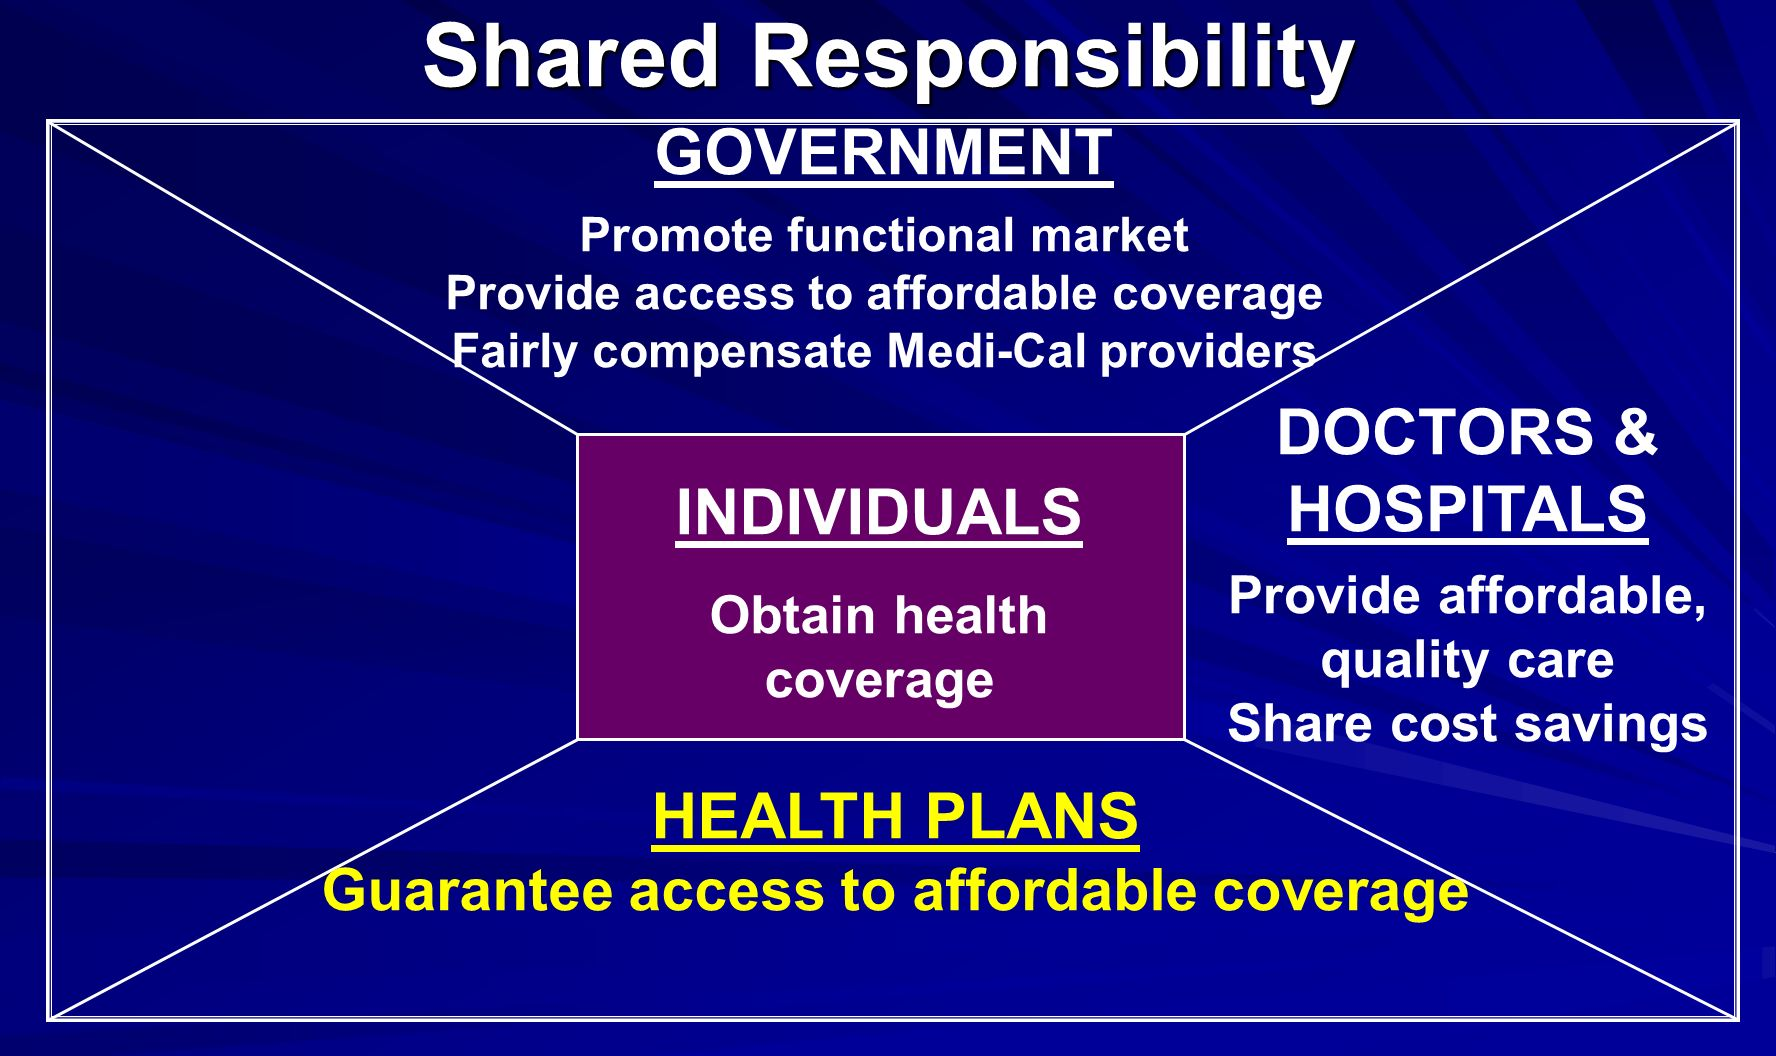 Shared Responsibility HEALTH PLANS Guarantee access to affordable coverage DOCTORS & HOSPITALS Provide affordable, quality care Share cost savings INDIVIDUALS Obtain health coverage GOVERNMENT Promote functional market Provide access to affordable coverage Fairly compensate Medi-Cal providers